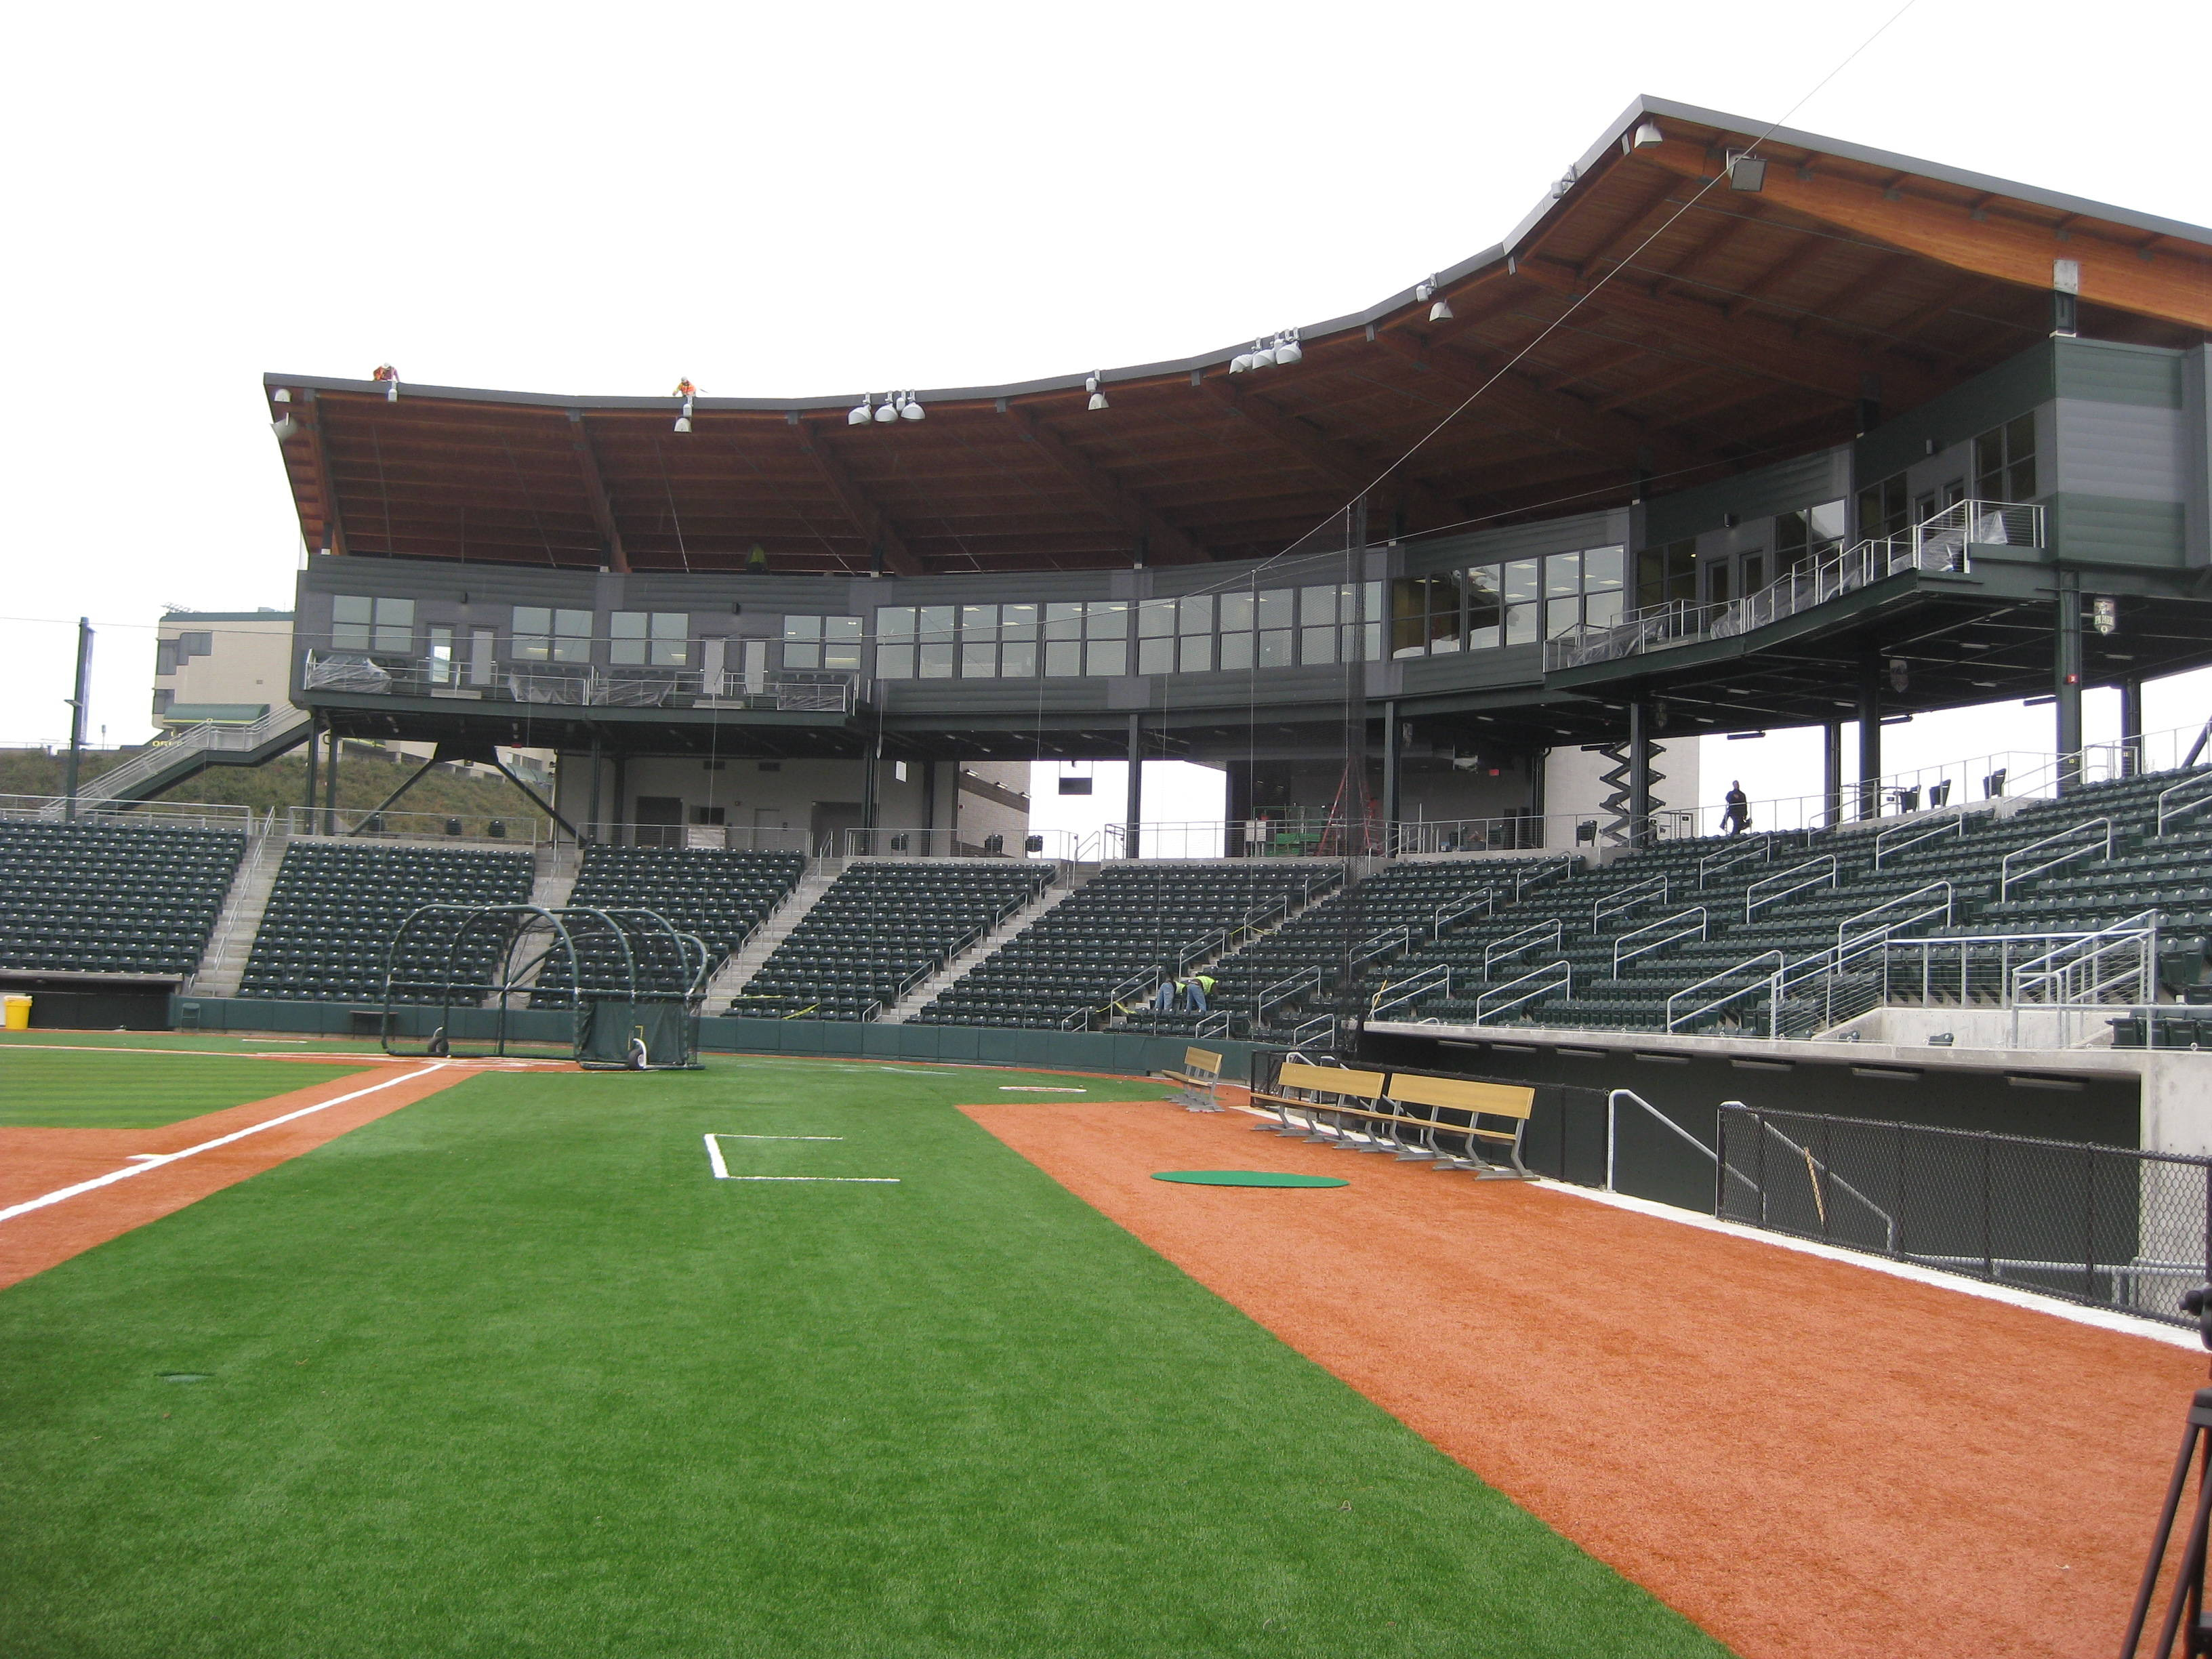 Pk park facility information university of oregon baseball pk park facility information university of oregon baseball stadium malvernweather Gallery